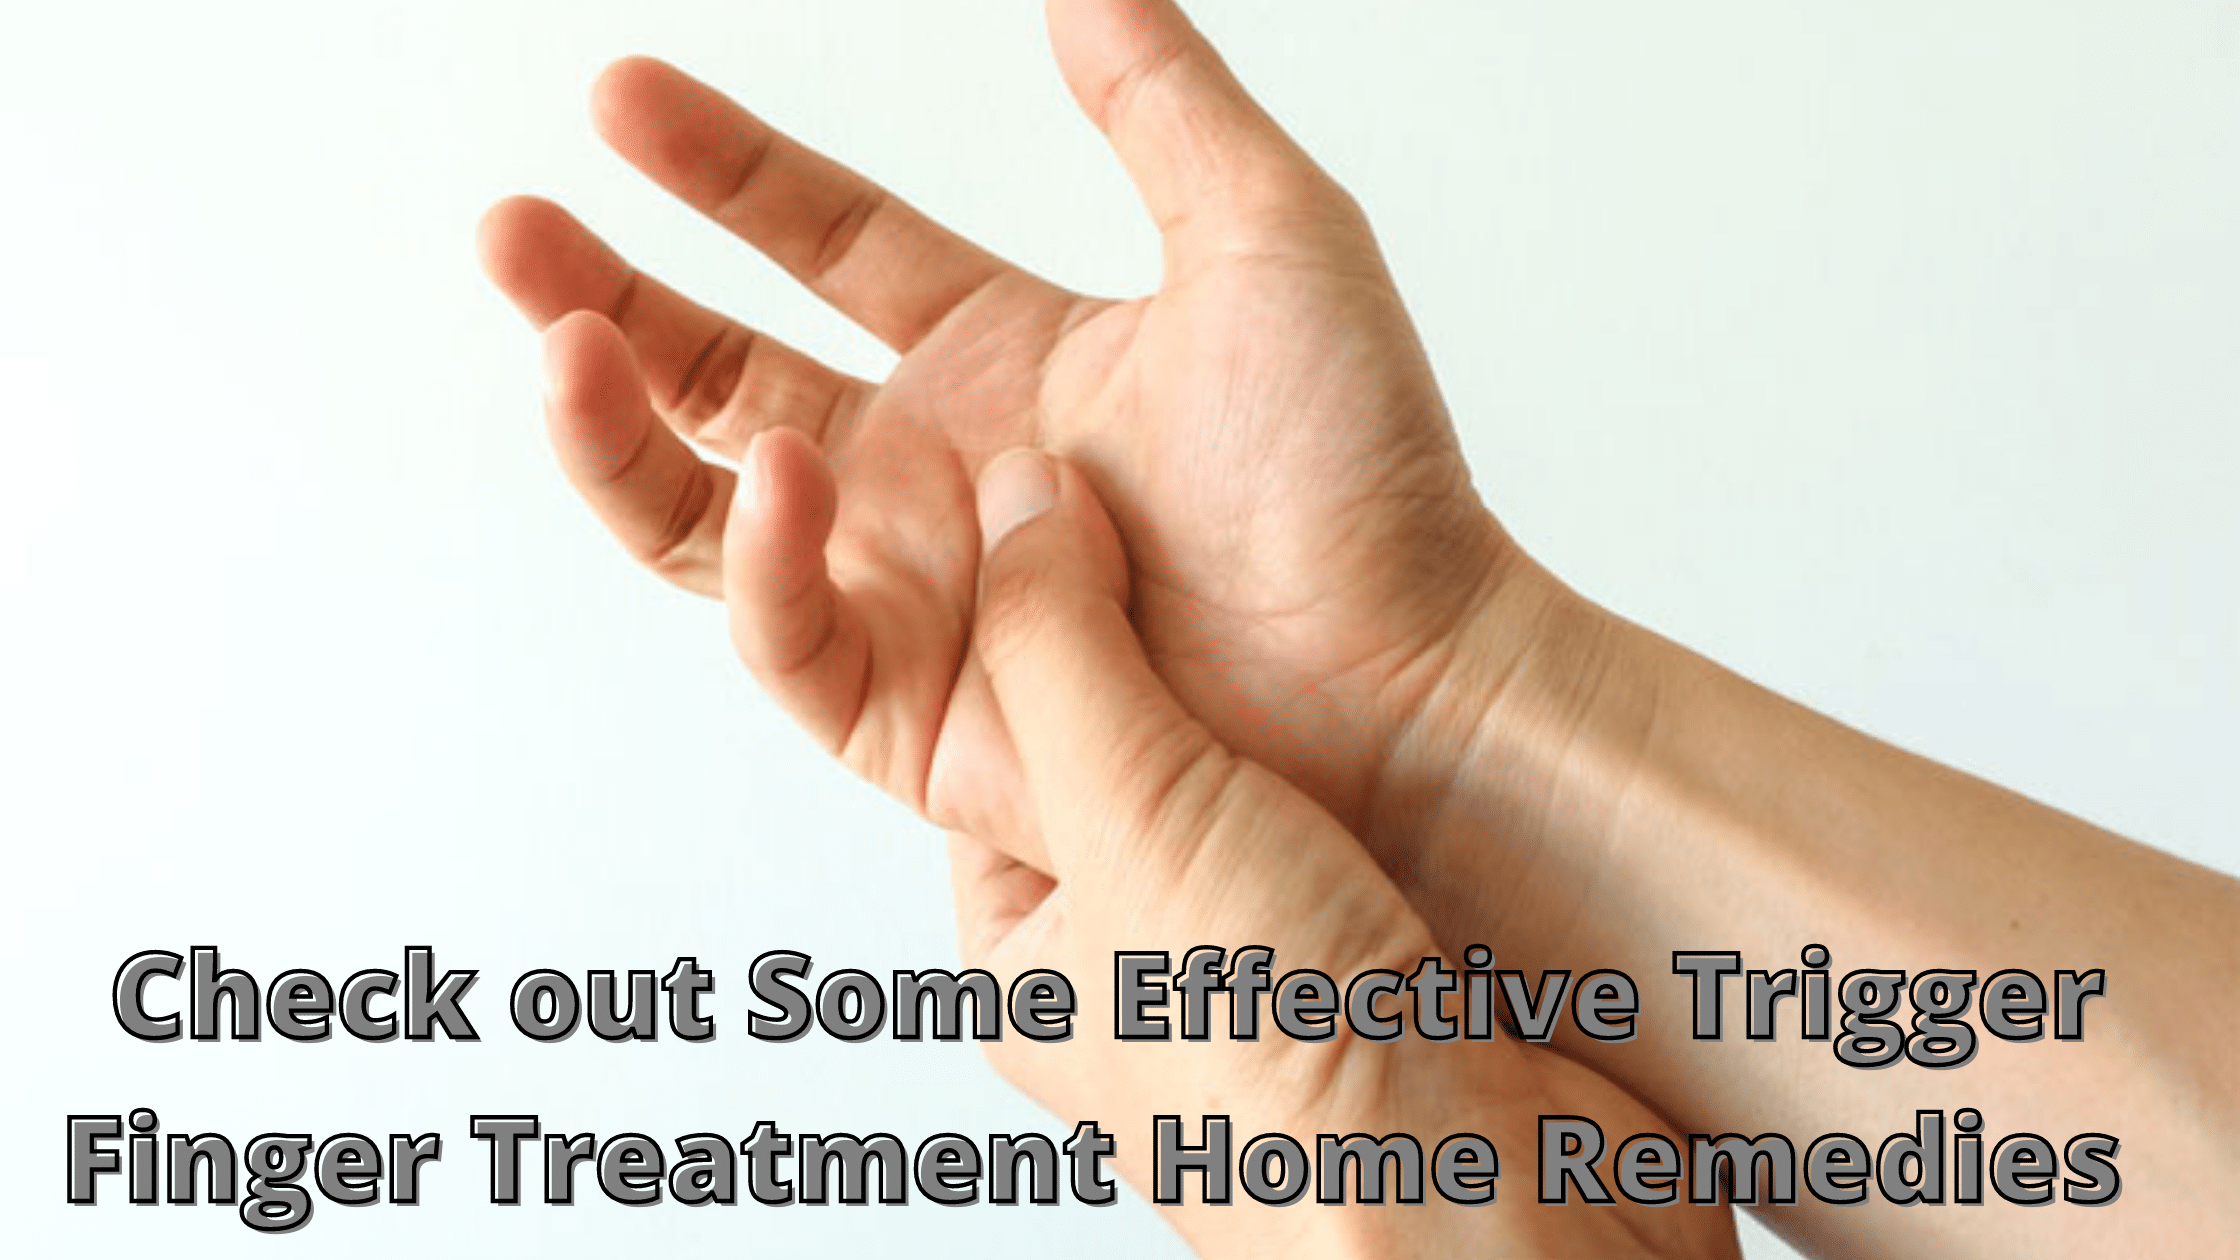 Check out Some Effective Trigger Finger Treatment Home Remedies